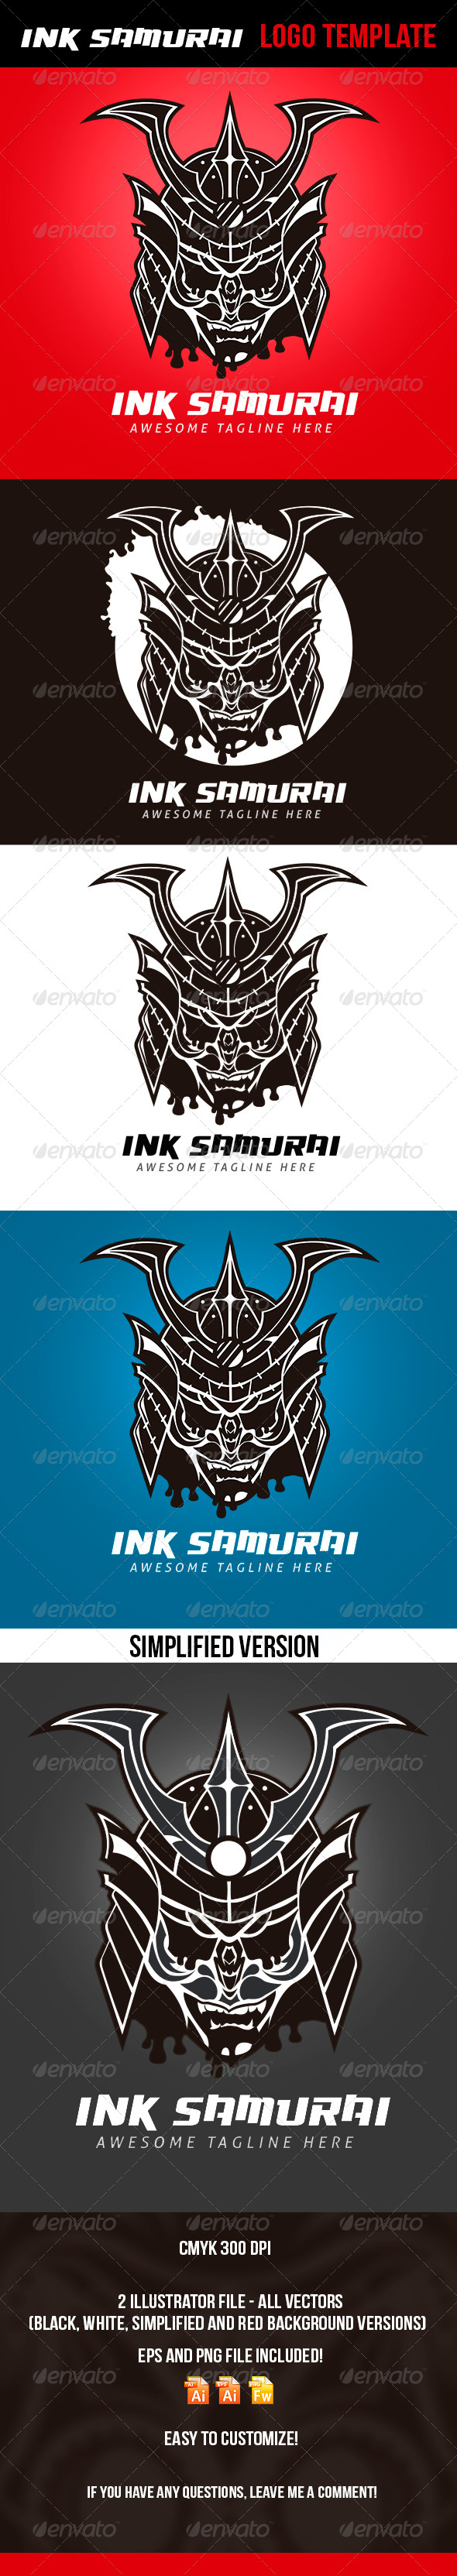 Ink Samurai Logo Template - Logo Templates